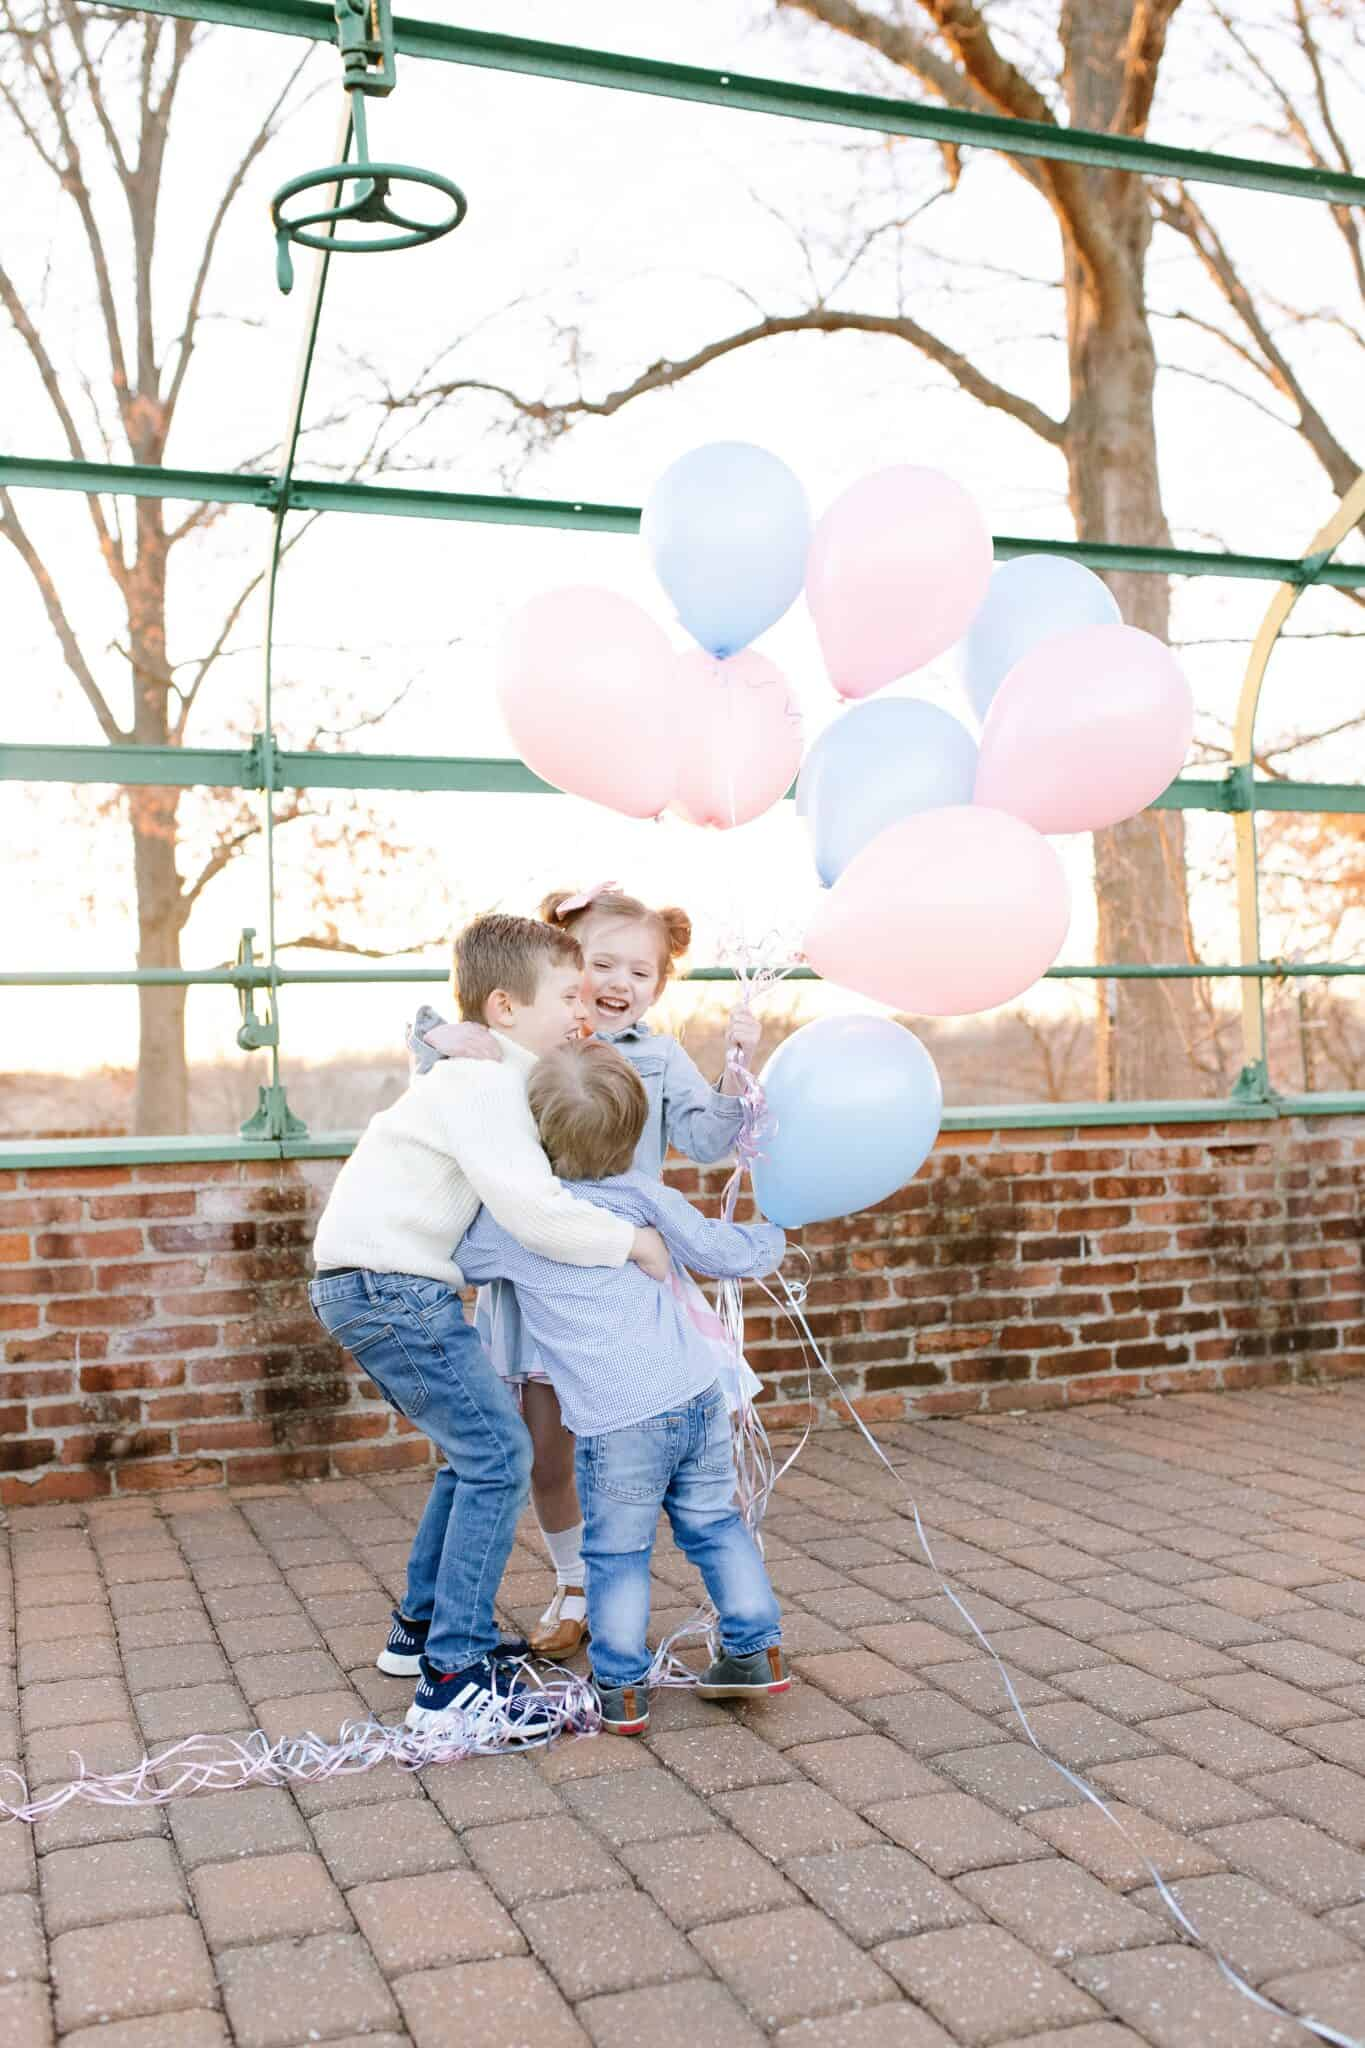 Kids with blue and pink balloons